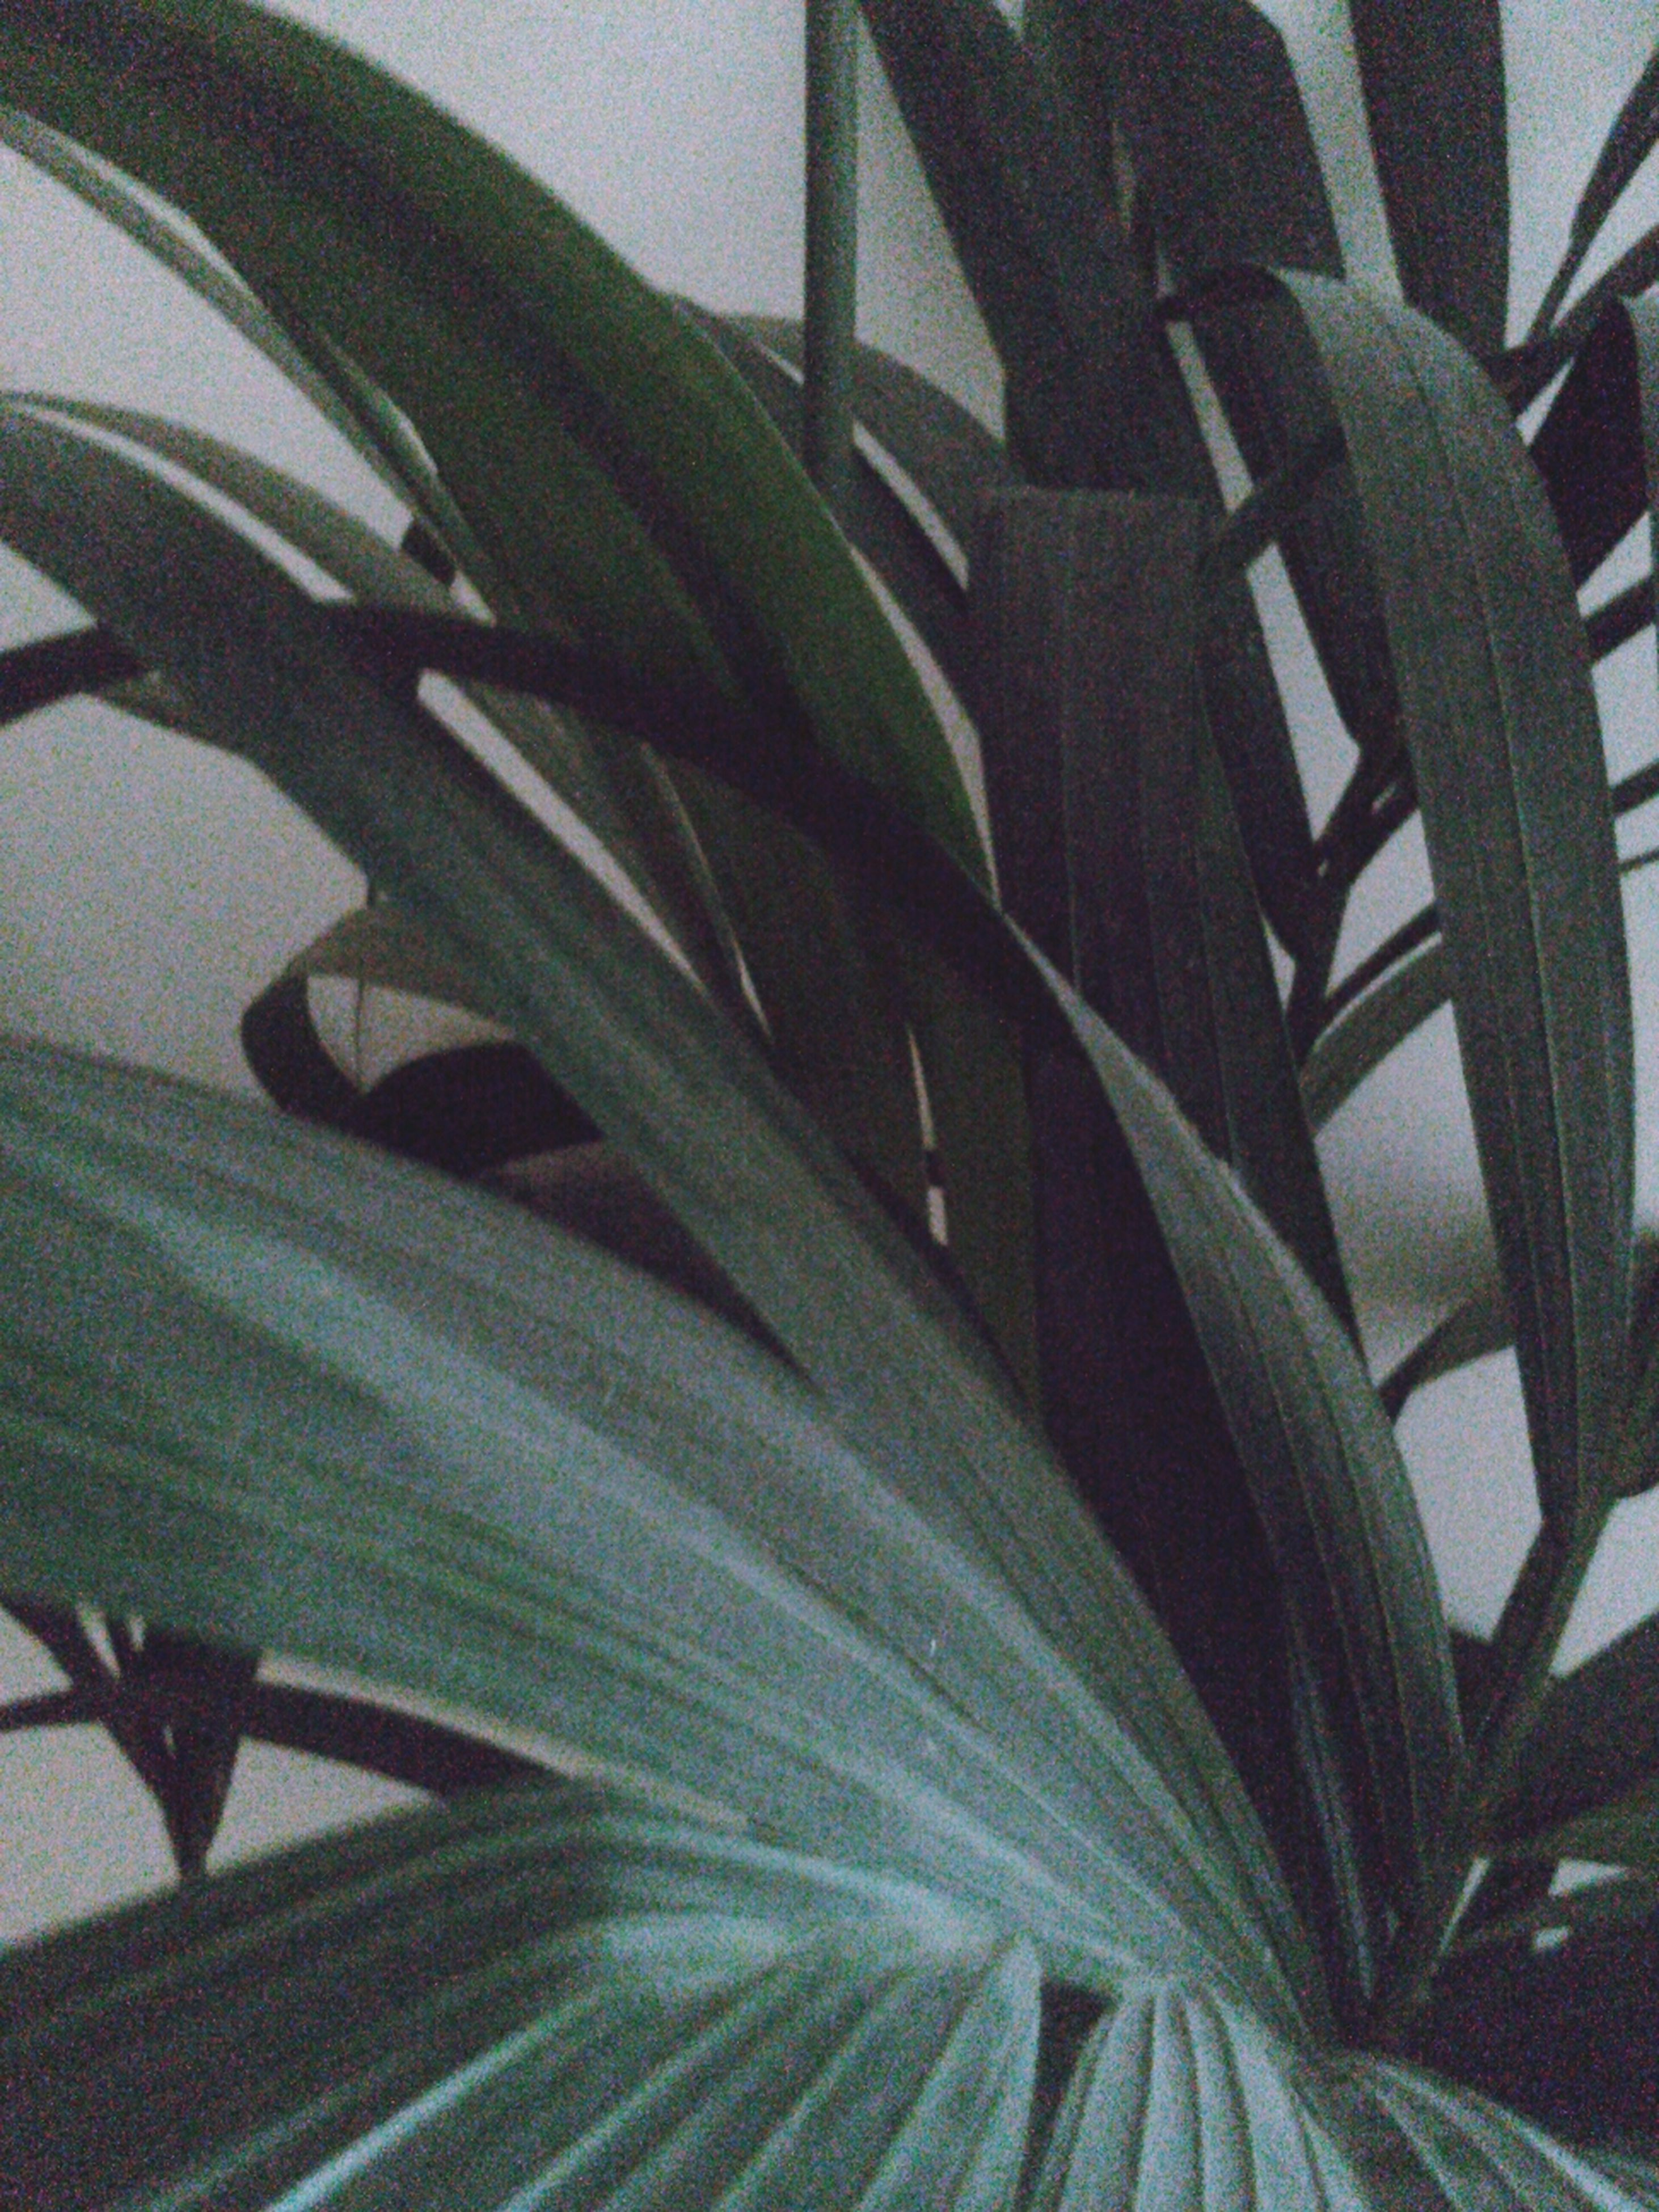 leaf, growth, plant, close-up, green color, indoors, nature, sunlight, potted plant, high angle view, no people, day, focus on foreground, leaf vein, growing, freshness, beauty in nature, pattern, green